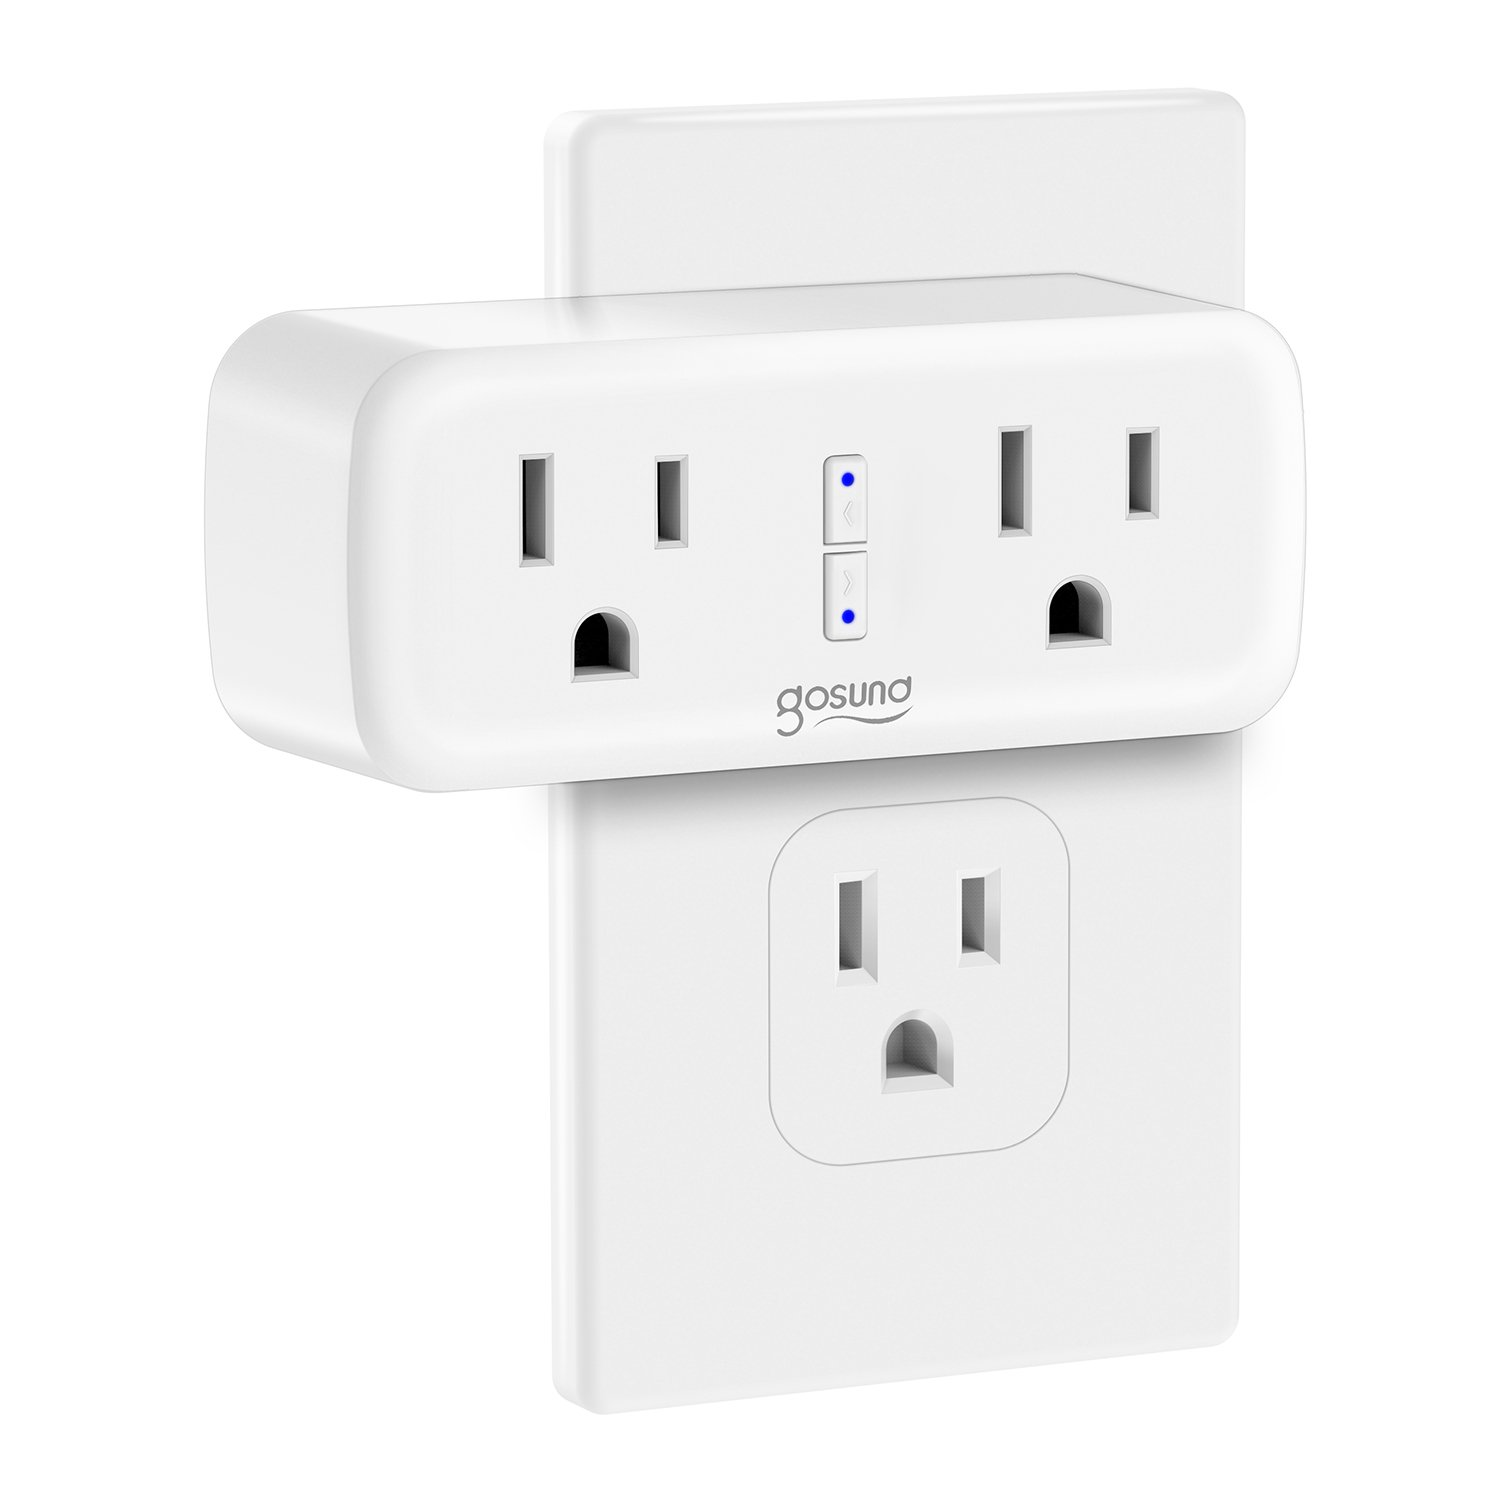 Smart Plug,2 in 1 Mini Gosund Wifi Smart Outlet,with Timer and Remote Control,Works with Alexa,Google Home,IFTTT,No Hub Required,ETL and FCC listed - Works individually or in Groups (wp2-2)